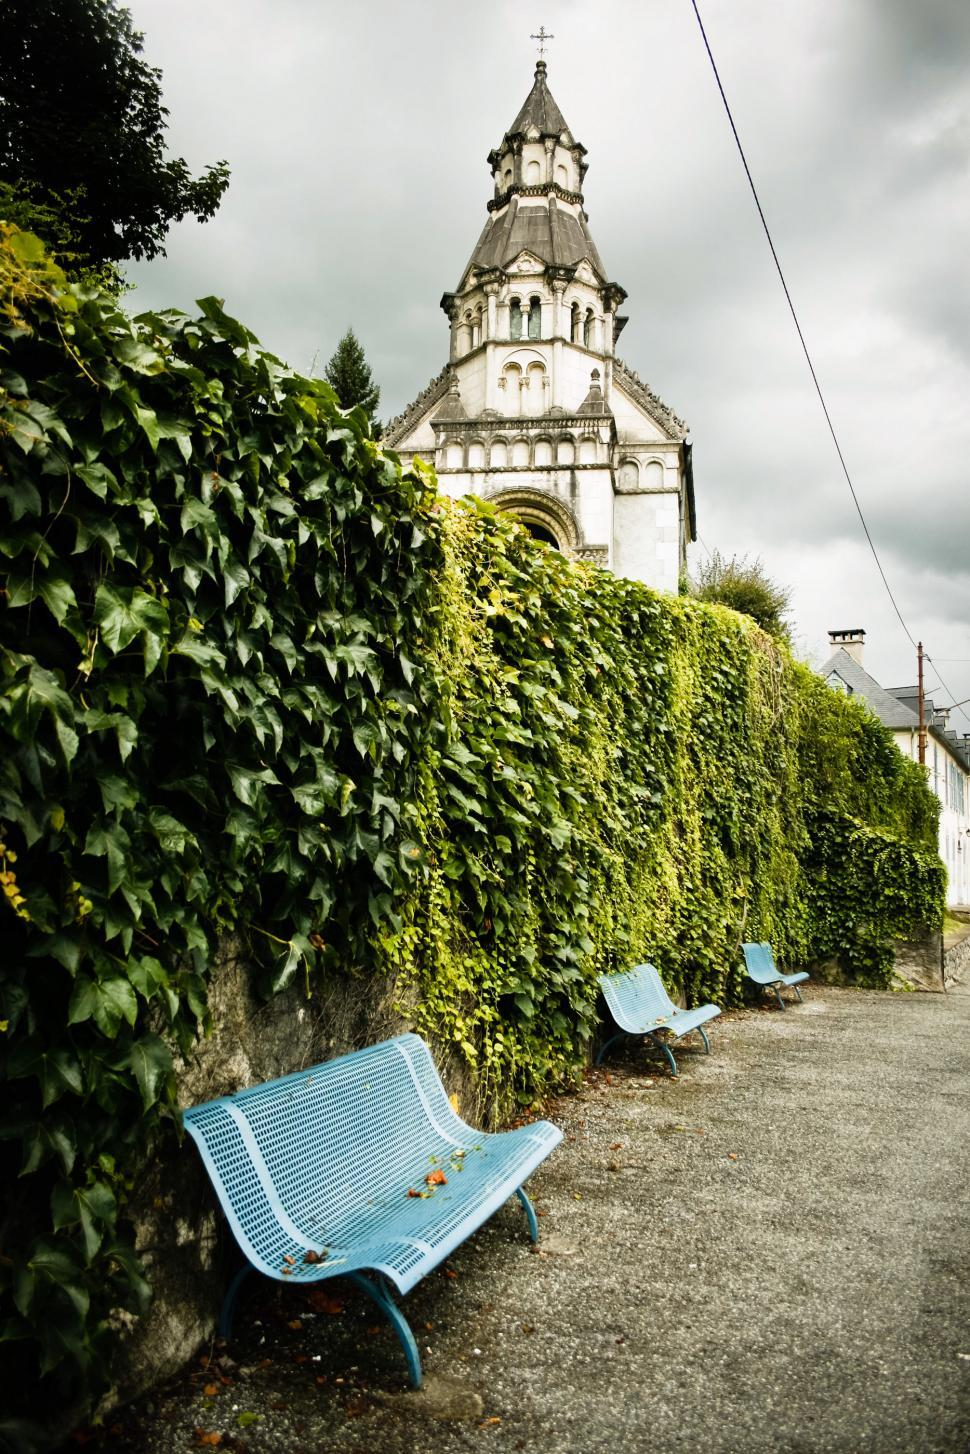 Download Free Stock Photo of Park benches by historical church